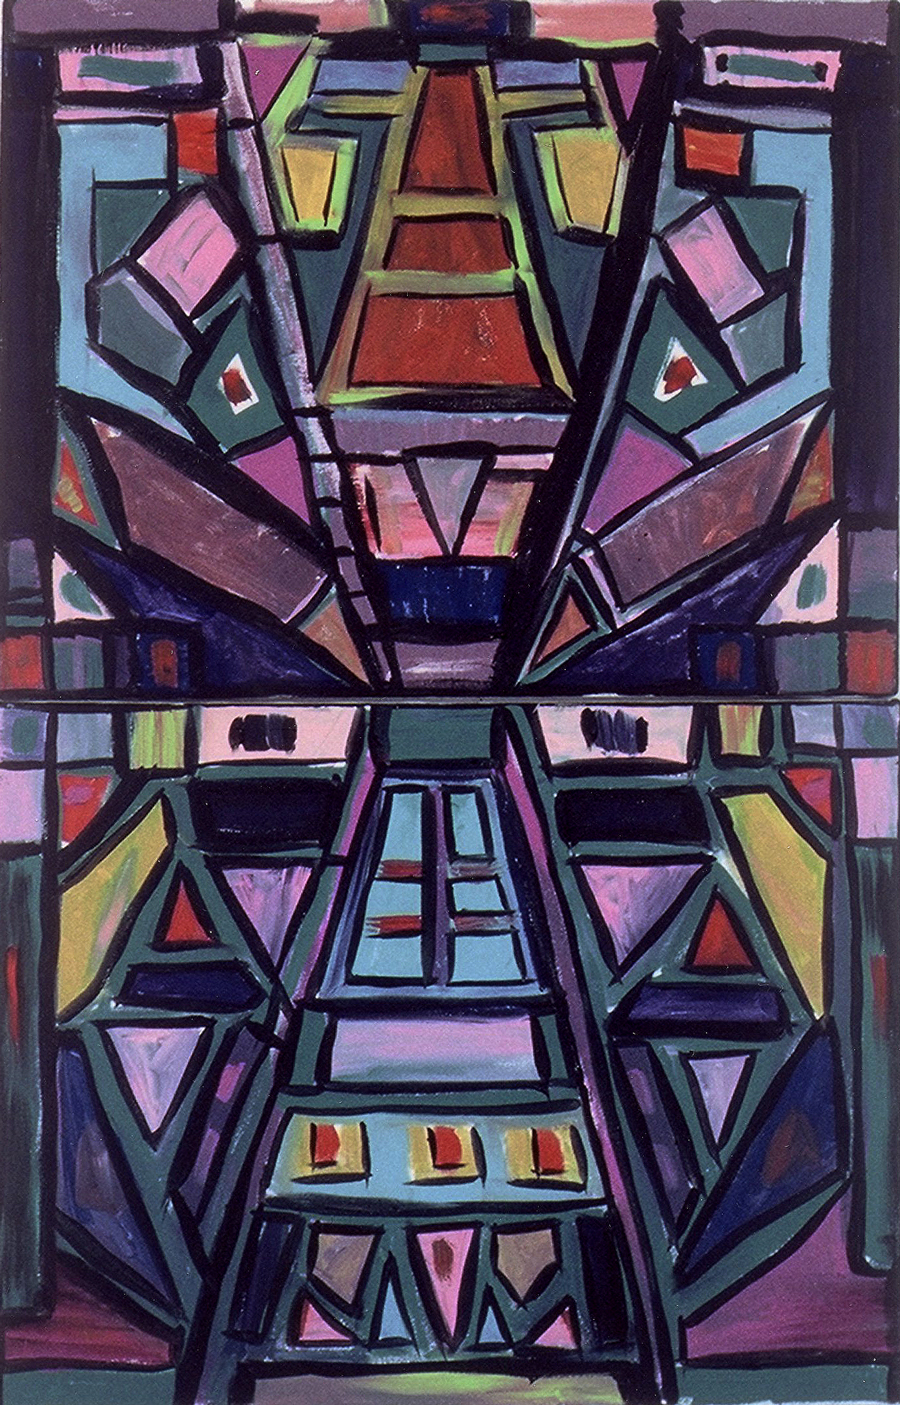 Stained Glass, 1981